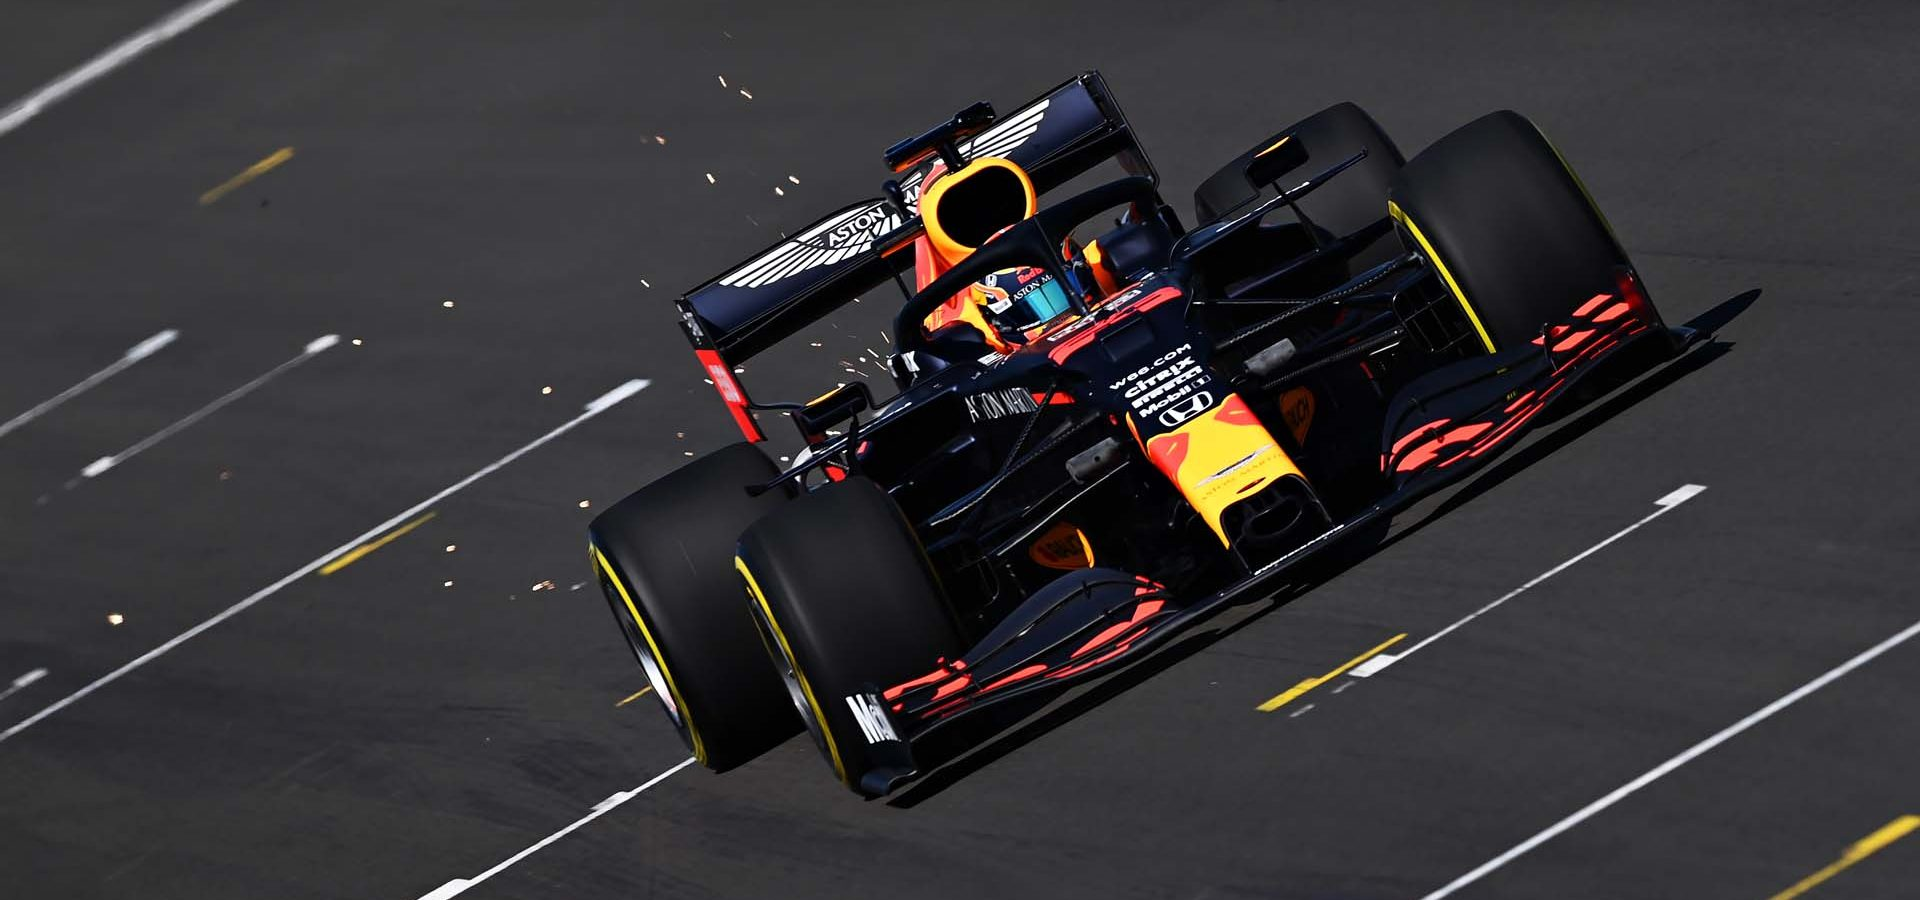 NORTHAMPTON, ENGLAND - JUNE 25: Alexander Albon of Thailand driving the (23) Aston Martin Red Bull Racing RB16 on track during the Red Bull Racing RB16 Filming Day at Silverstone Circuit on June 25, 2020 in Northampton, England. (Photo by Clive Mason/Getty Images) // Getty Images / Red Bull Content Pool  // AP-24EEHPVF12111 // Usage for editorial use only //